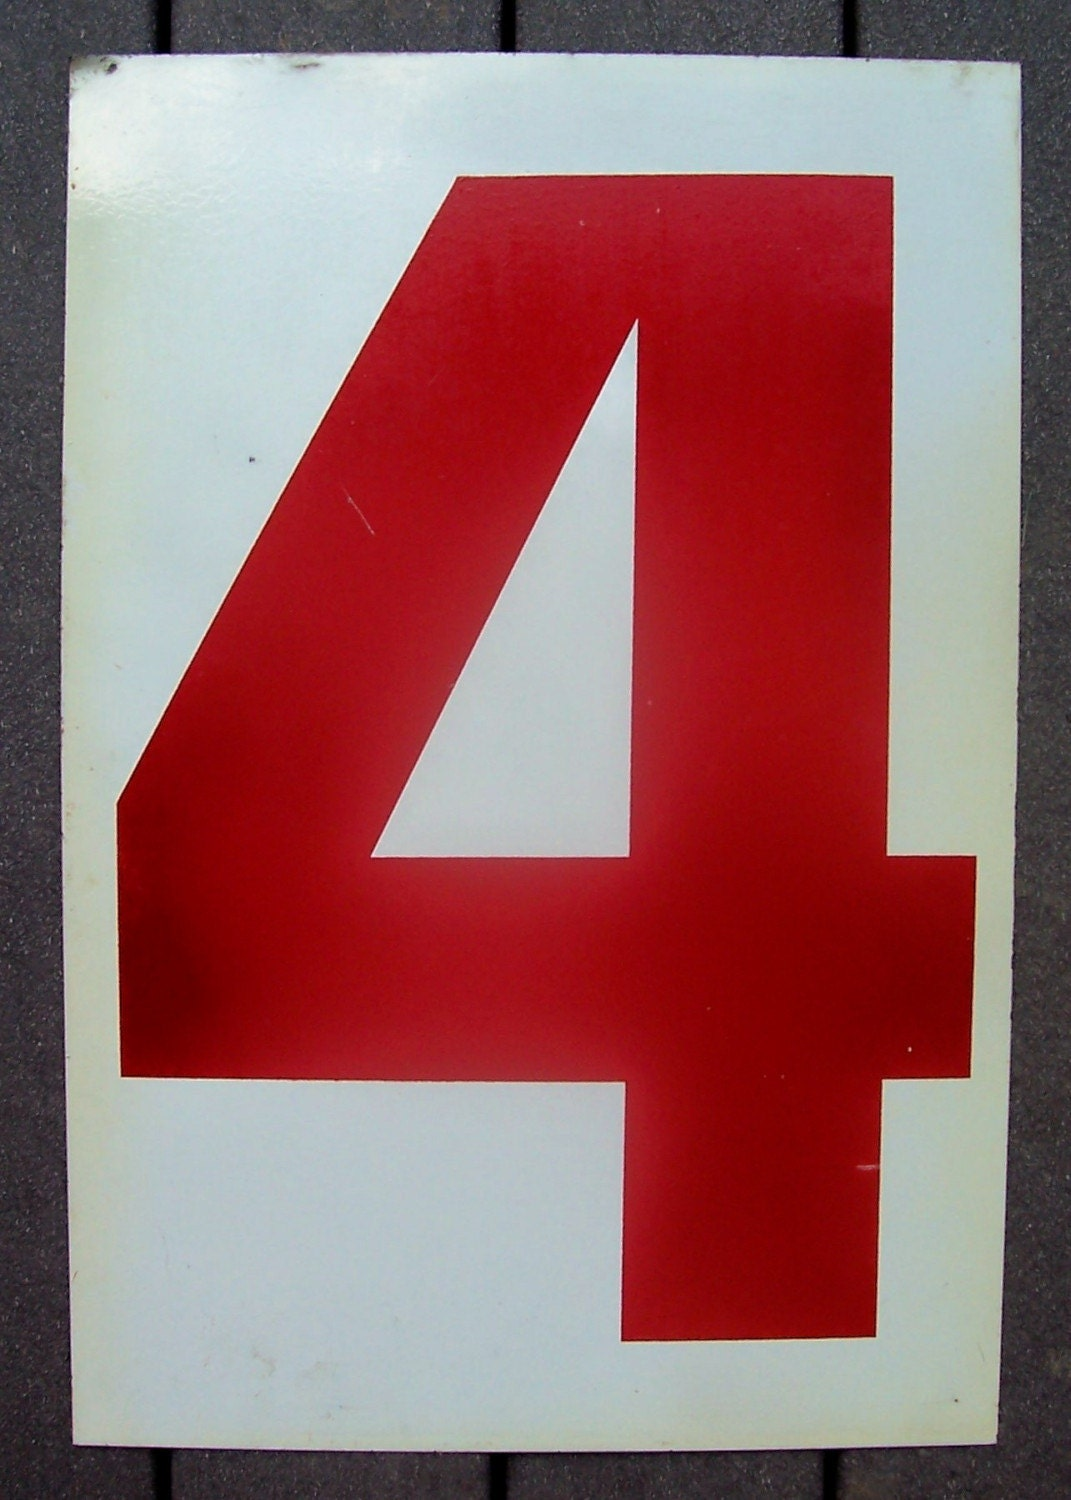 Large Vintage Red Scoreboard Number Two And Four By